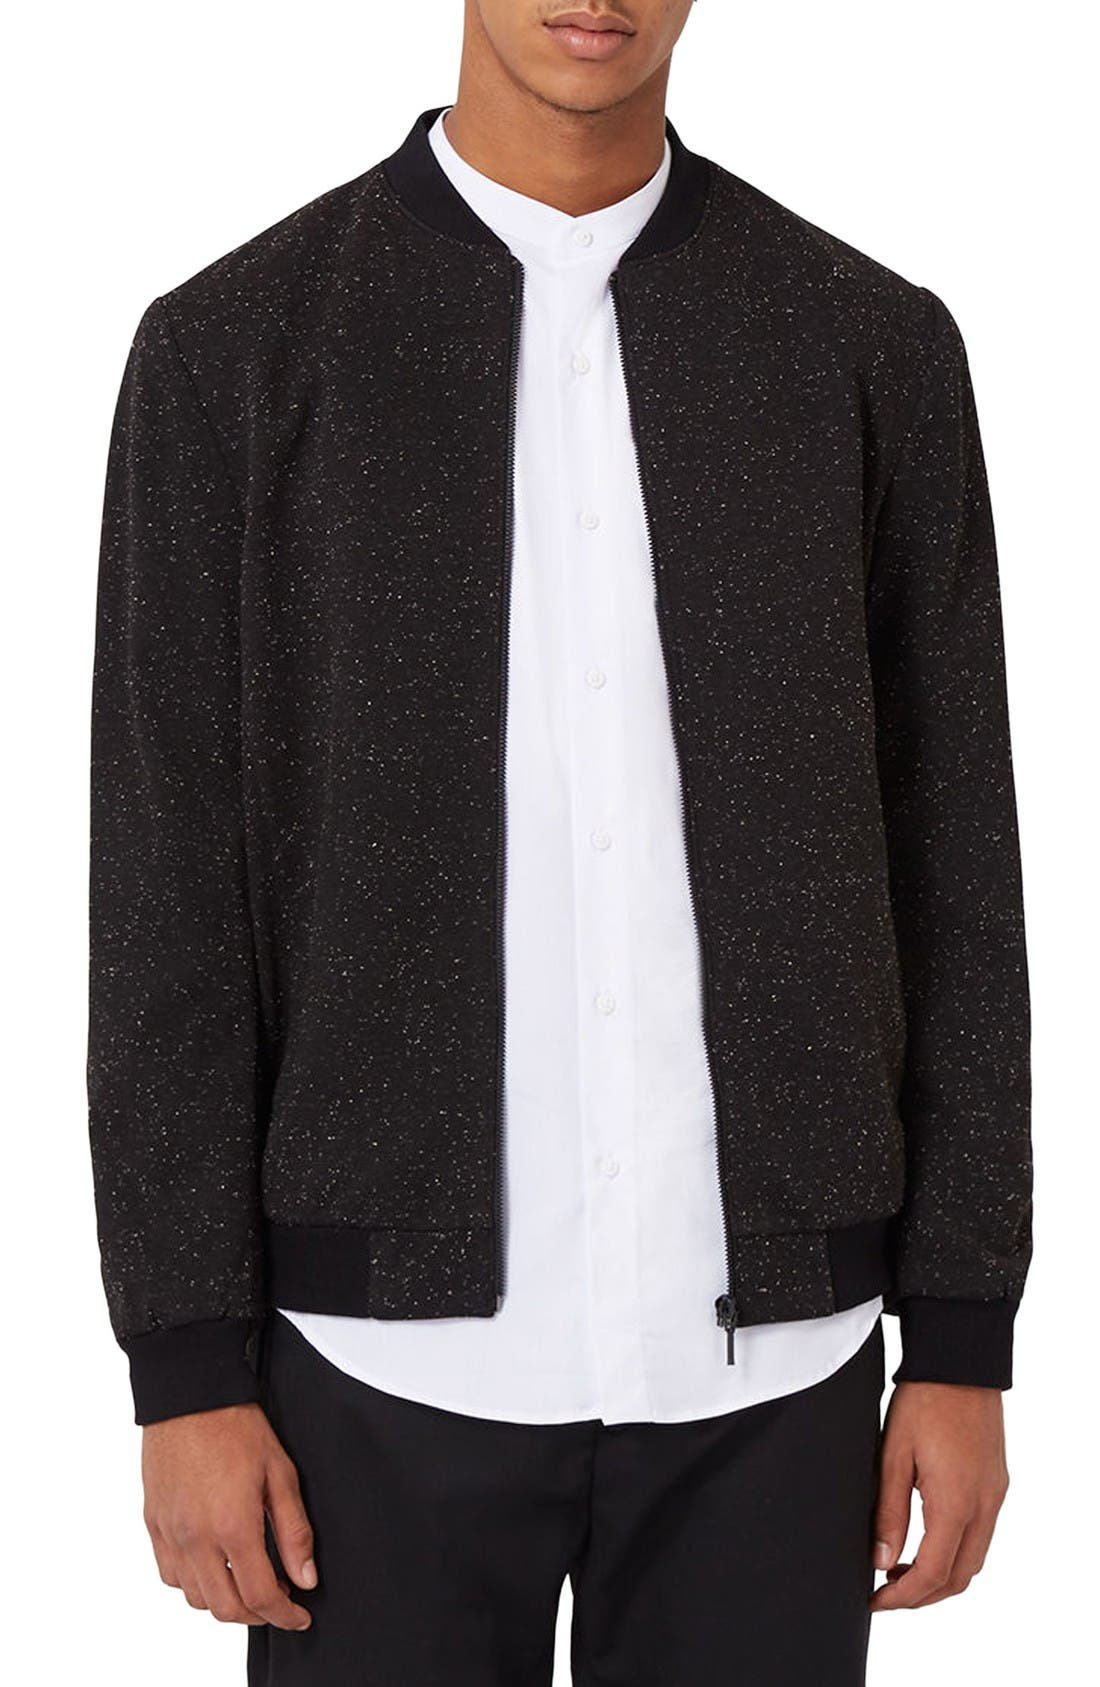 Alternate Image 1 Selected - Topman Nep Flecked Bomber Jacket